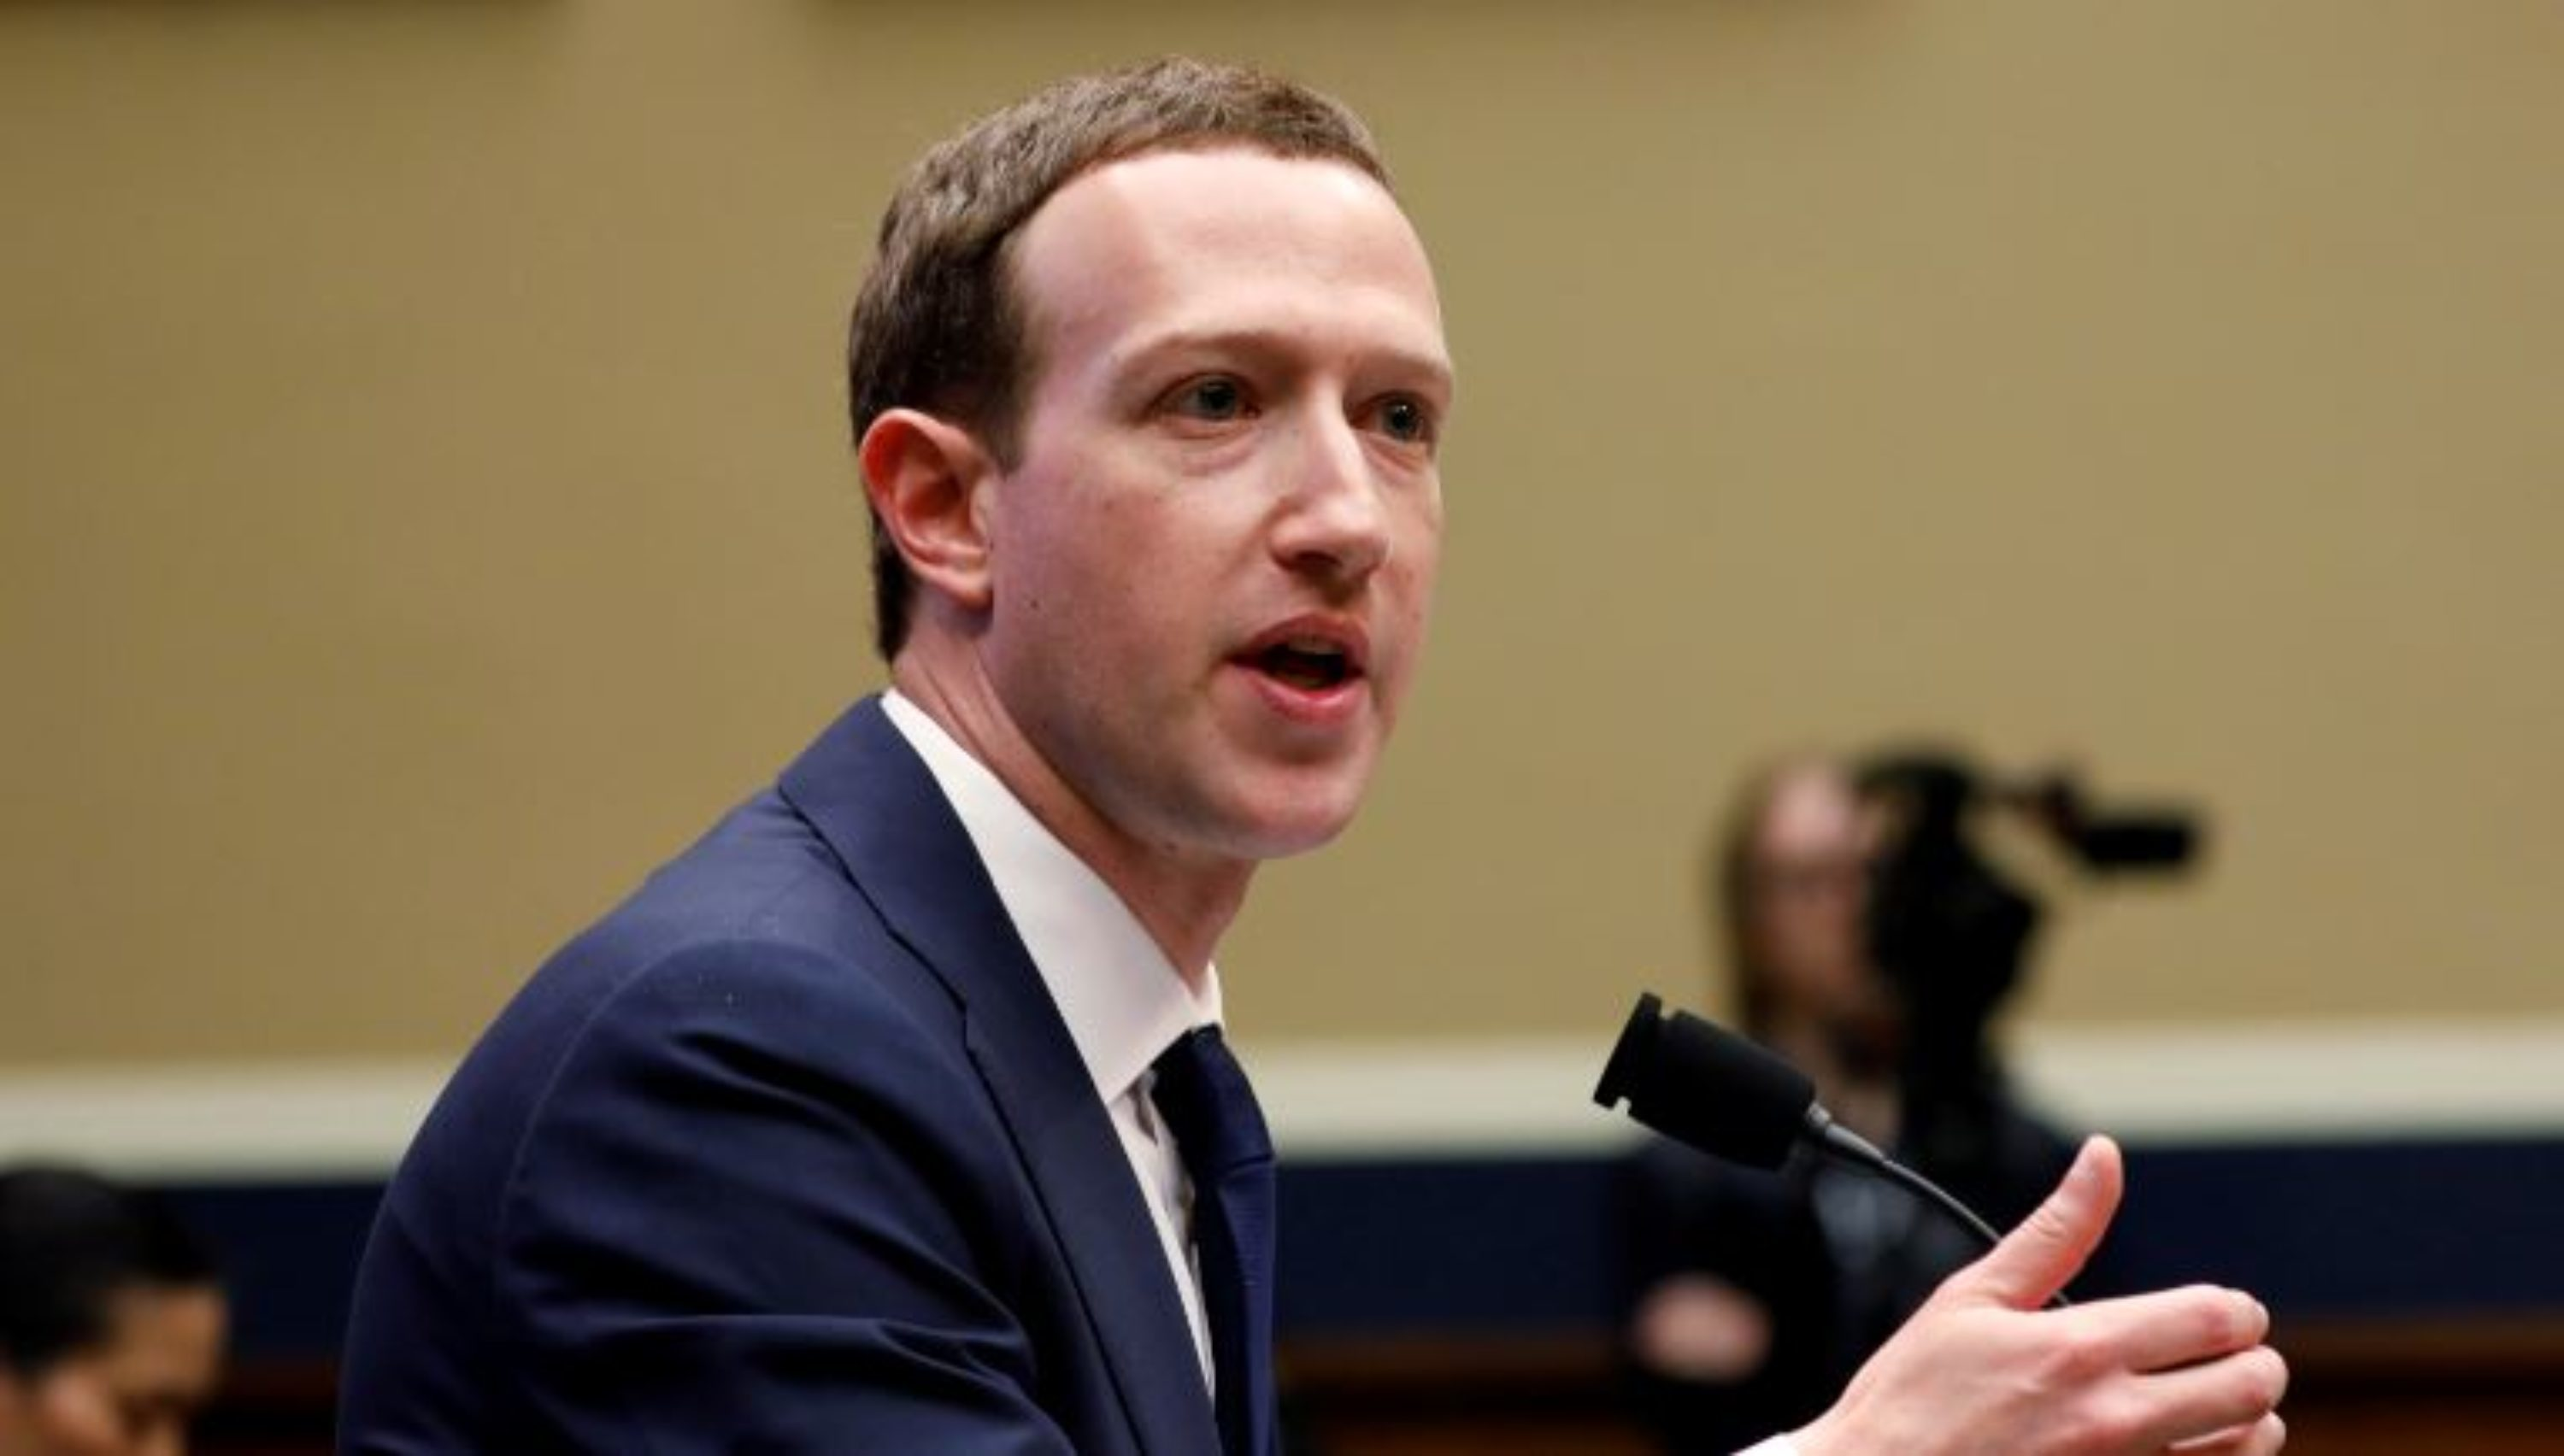 Facebook CEO Mark Zuckerberg testifies before a House Energy and Commerce Committee hearing regarding the company's use and protection of user data on Capitol Hill in Washington, U.S., April 11, 2018. REUTERS/Aaron P. Bernstein